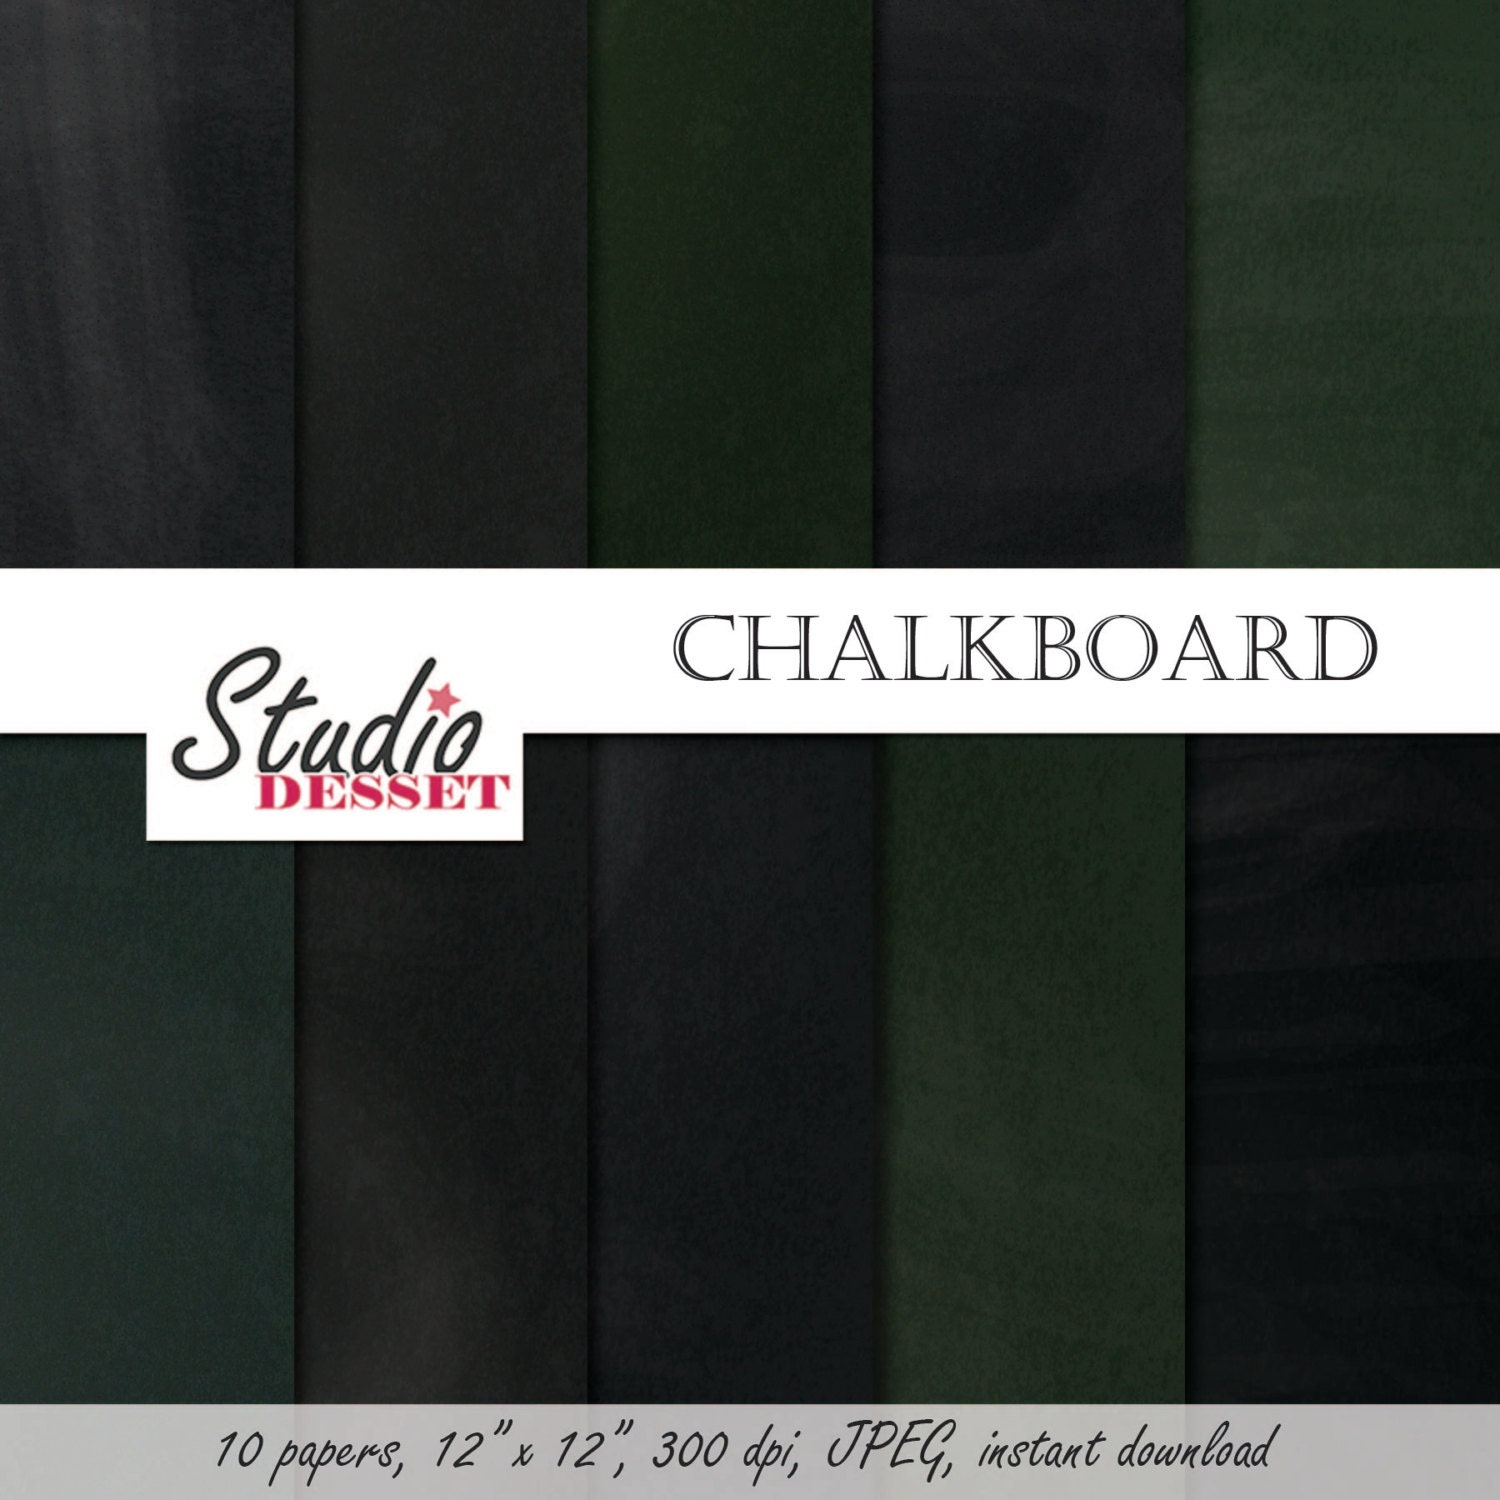 chalkboard paper Chalkboard paper from your chalkboard needs to your diy supplies, here is where you will find the best tools and accessories.